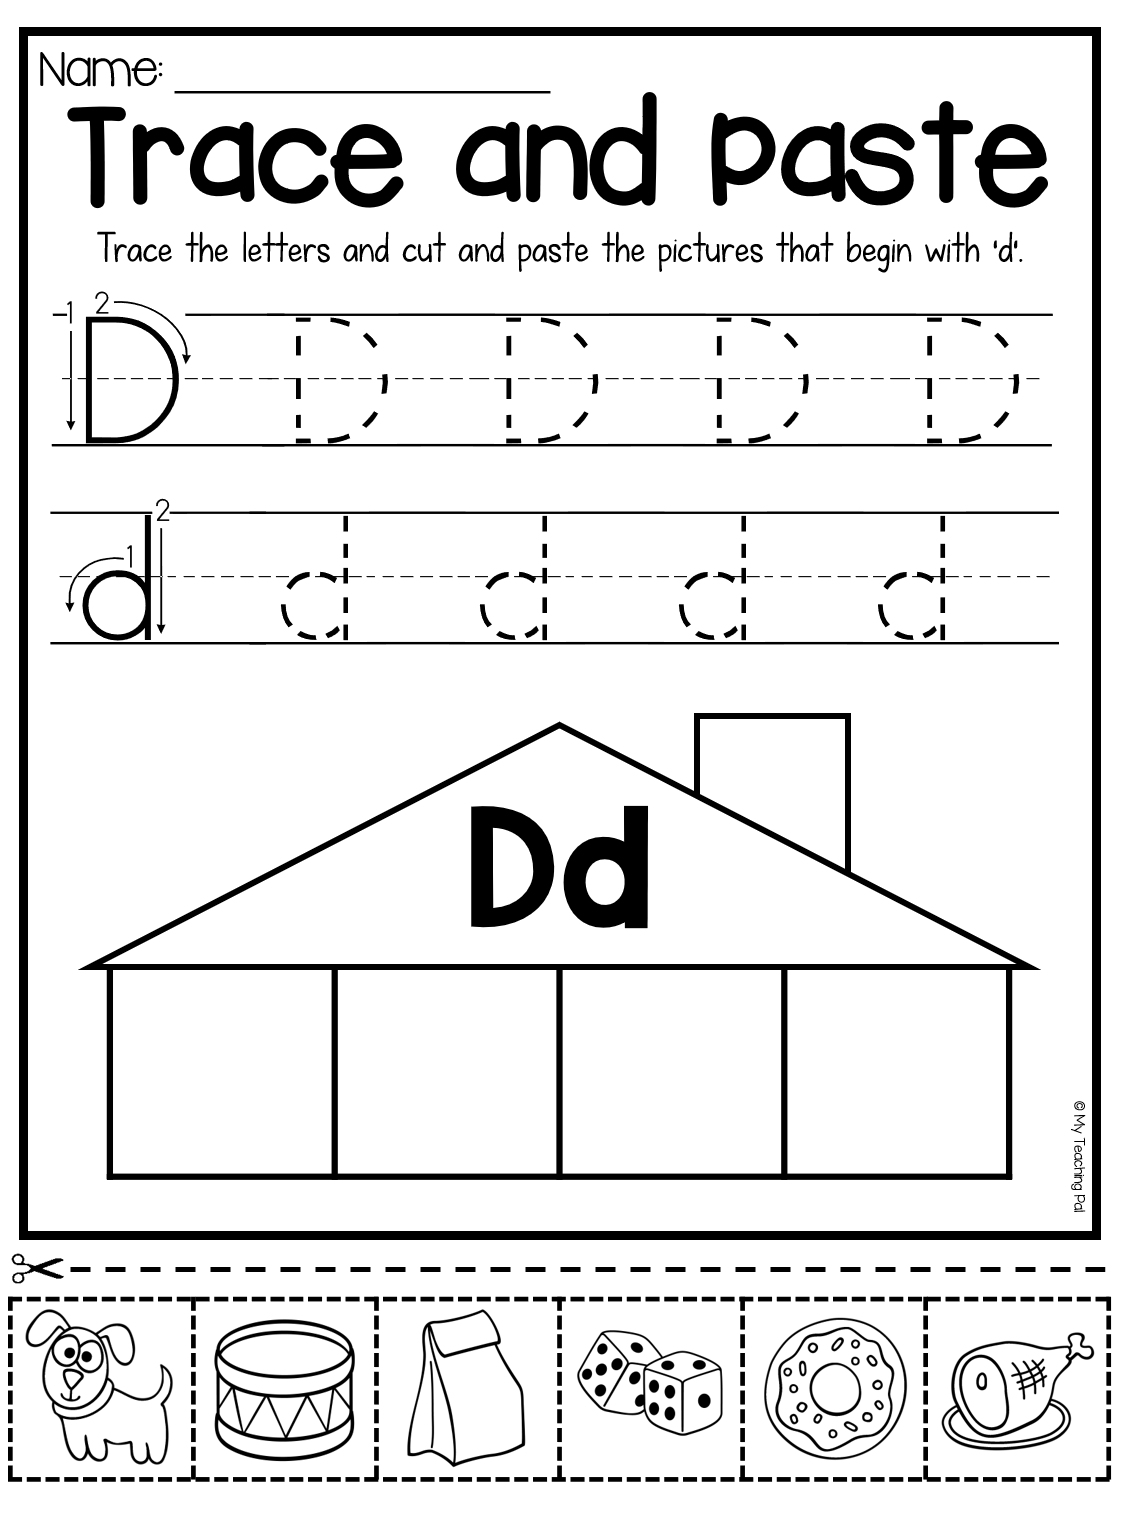 Missing Beginning Letter Worksheet